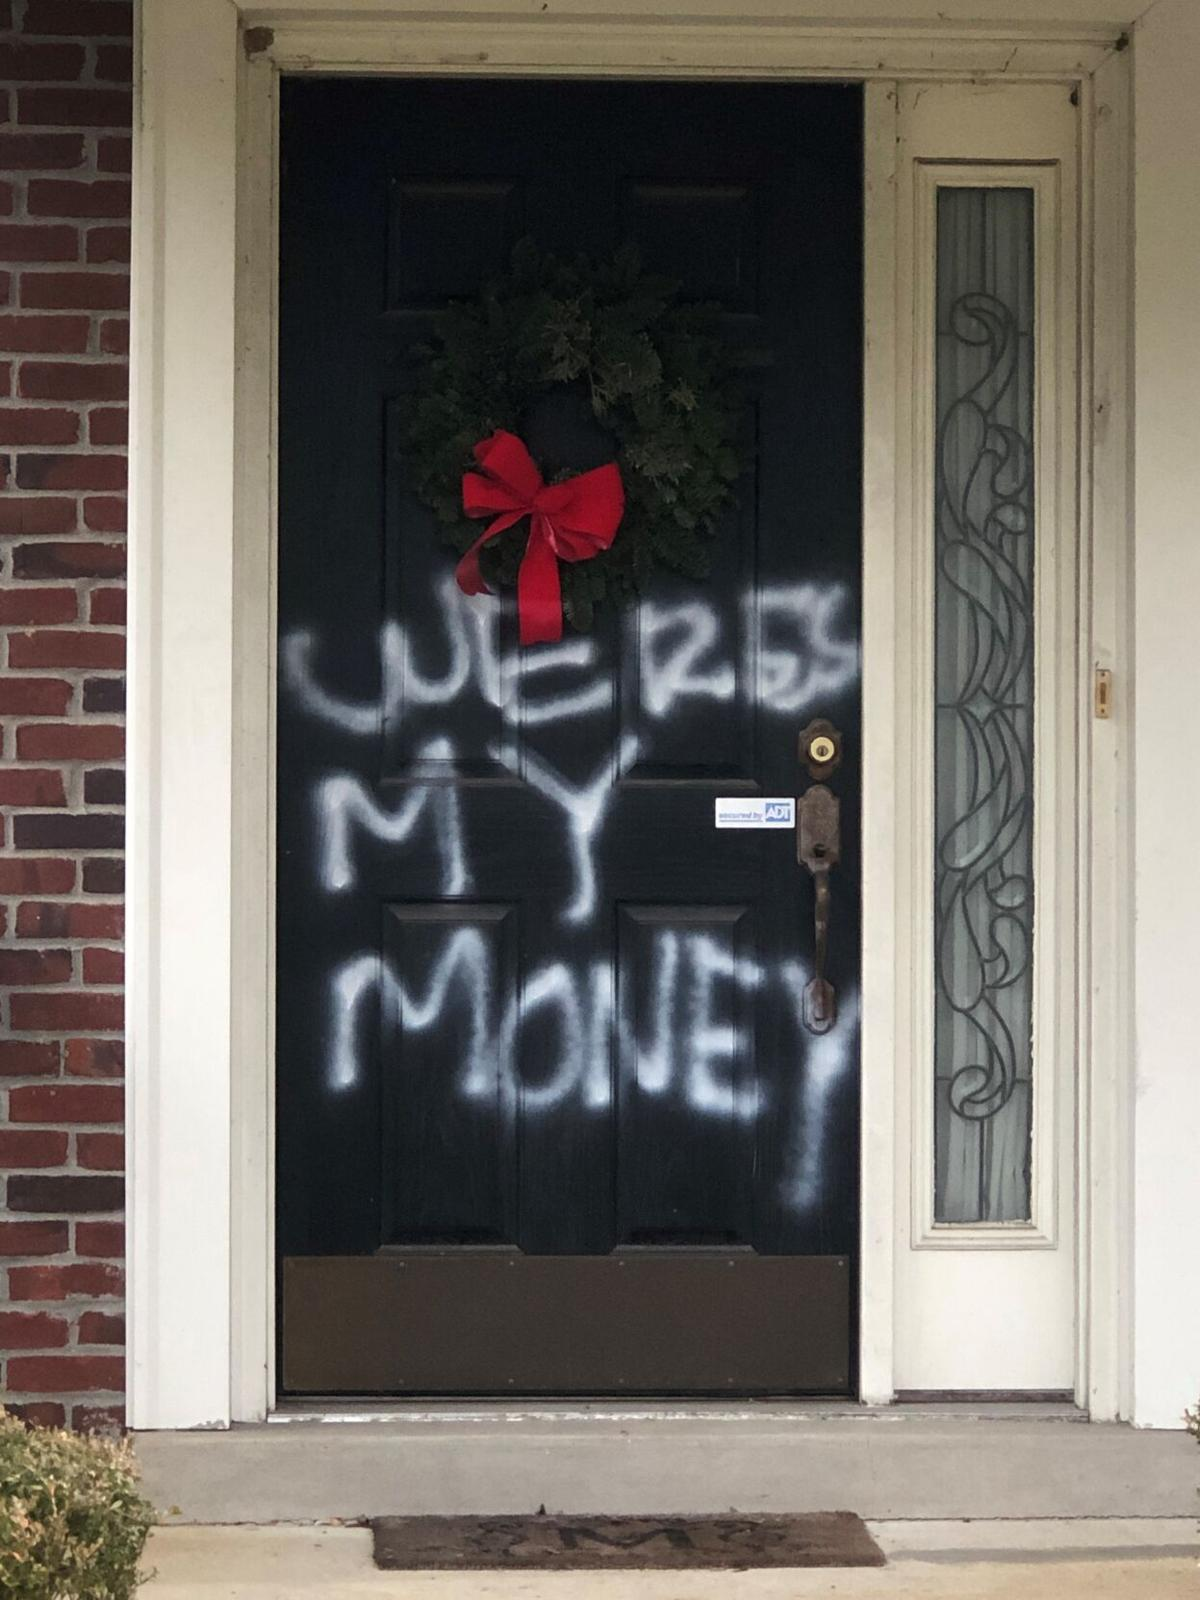 Photo of vandalism on Senator Mitch McConnell's front door